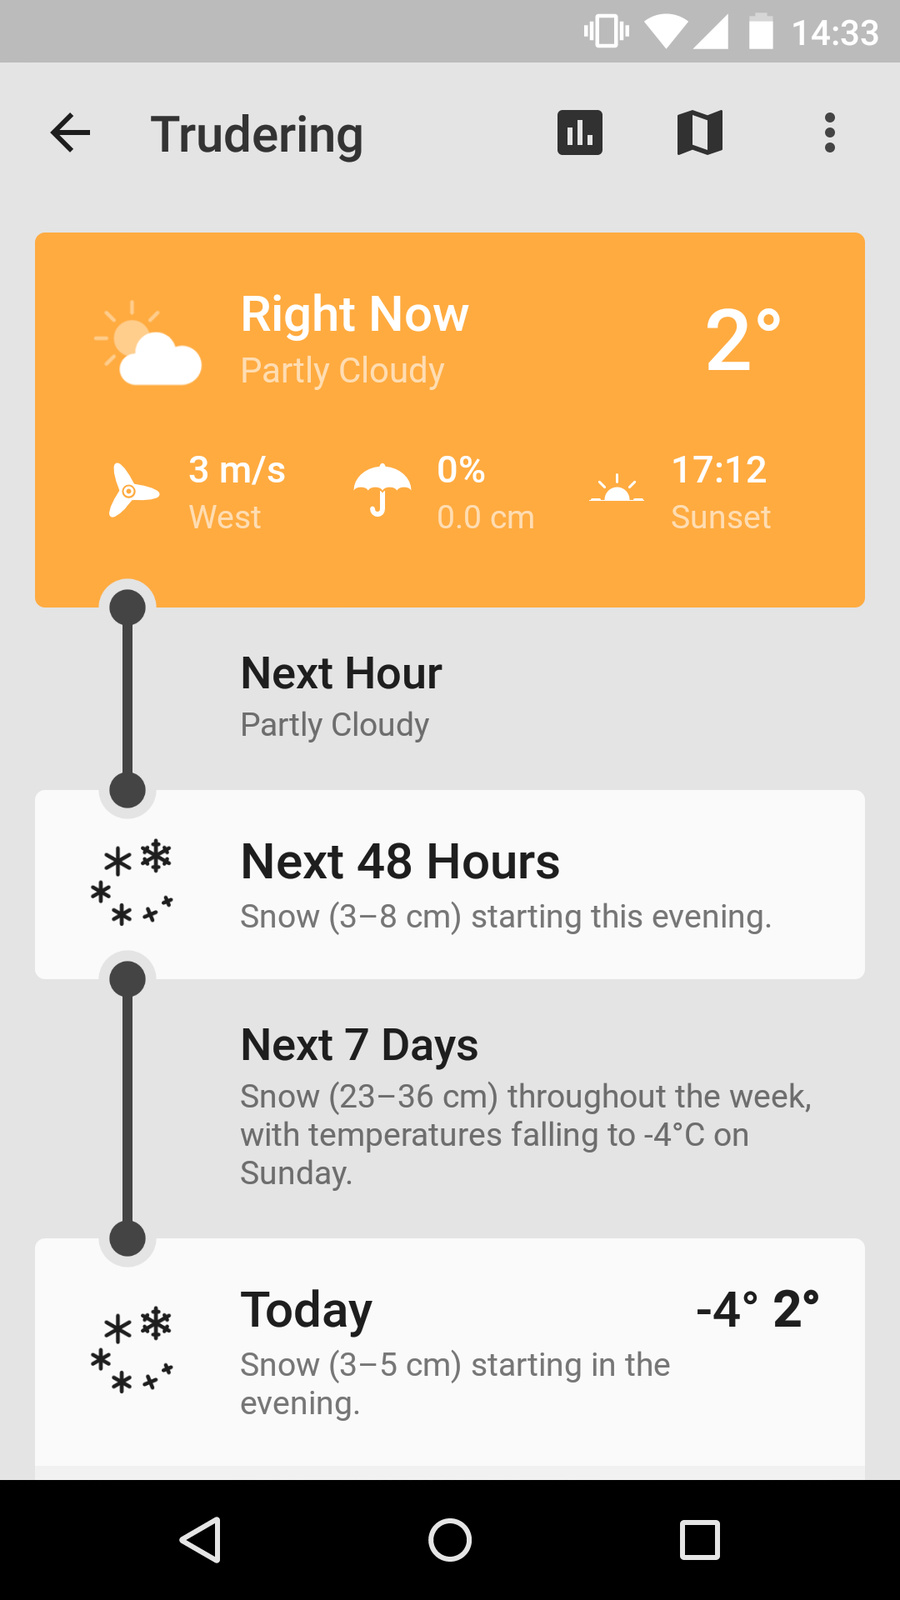 Weather forecast, timeline view (collapsed)